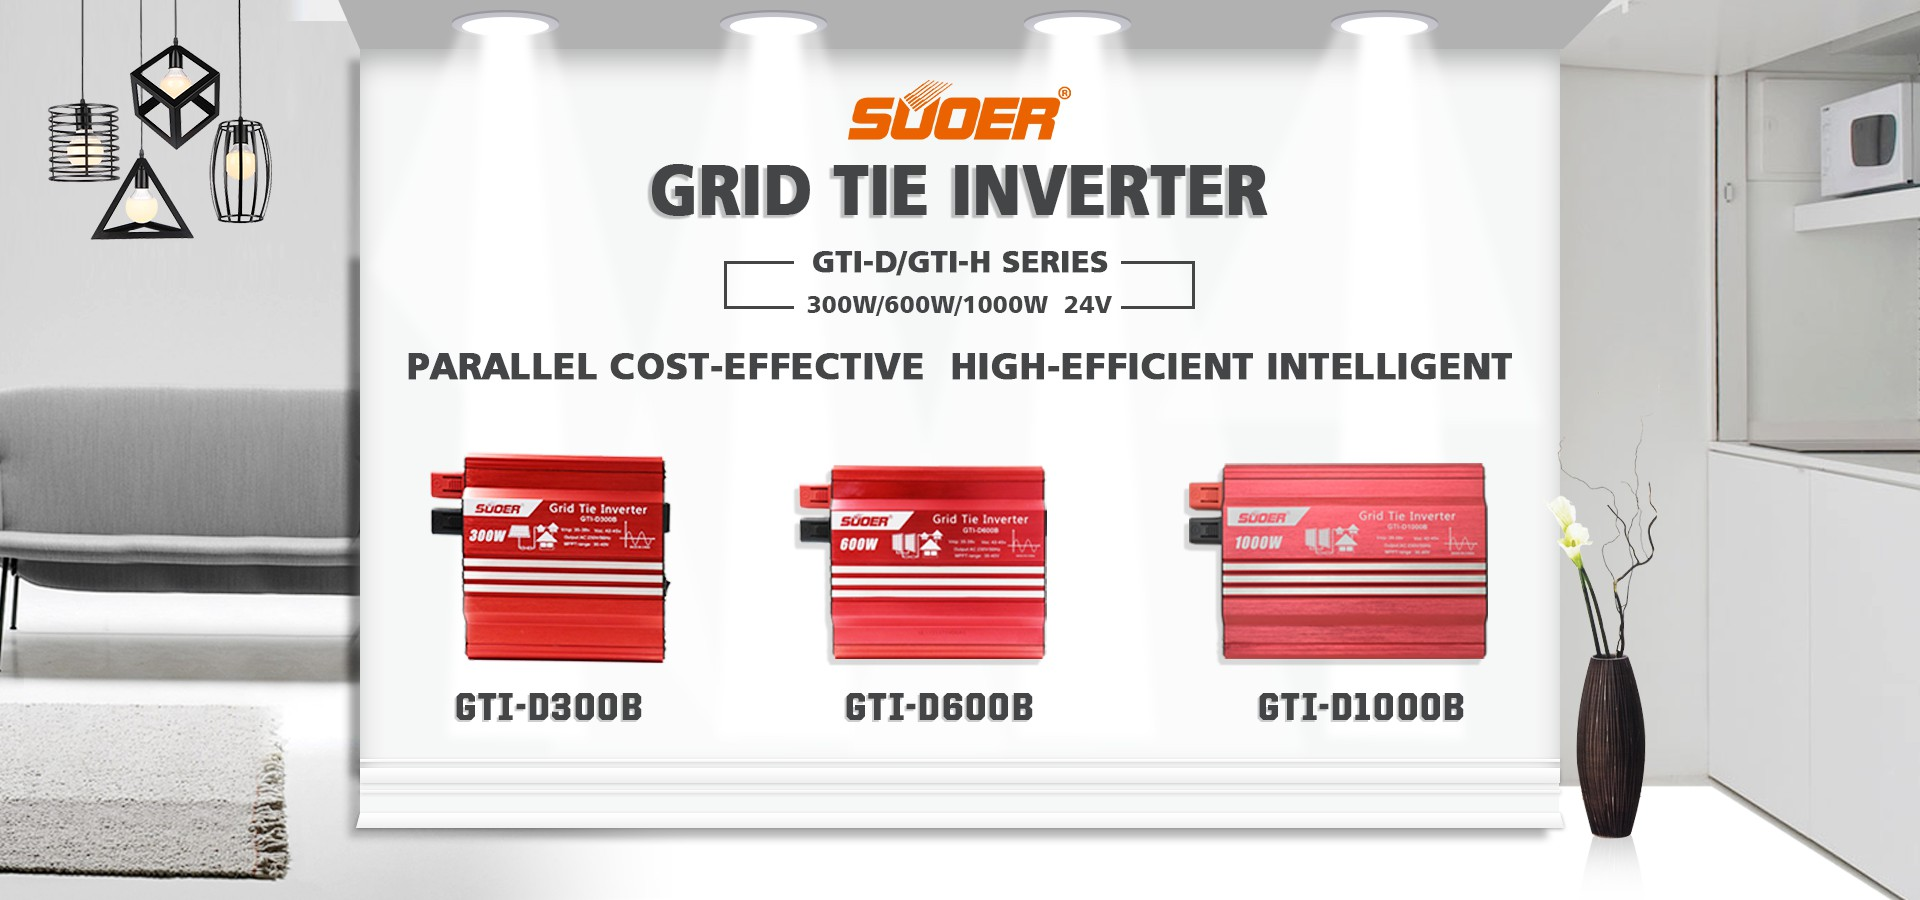 Suoer MPPT Grid-connected Photovoltaic Inverter